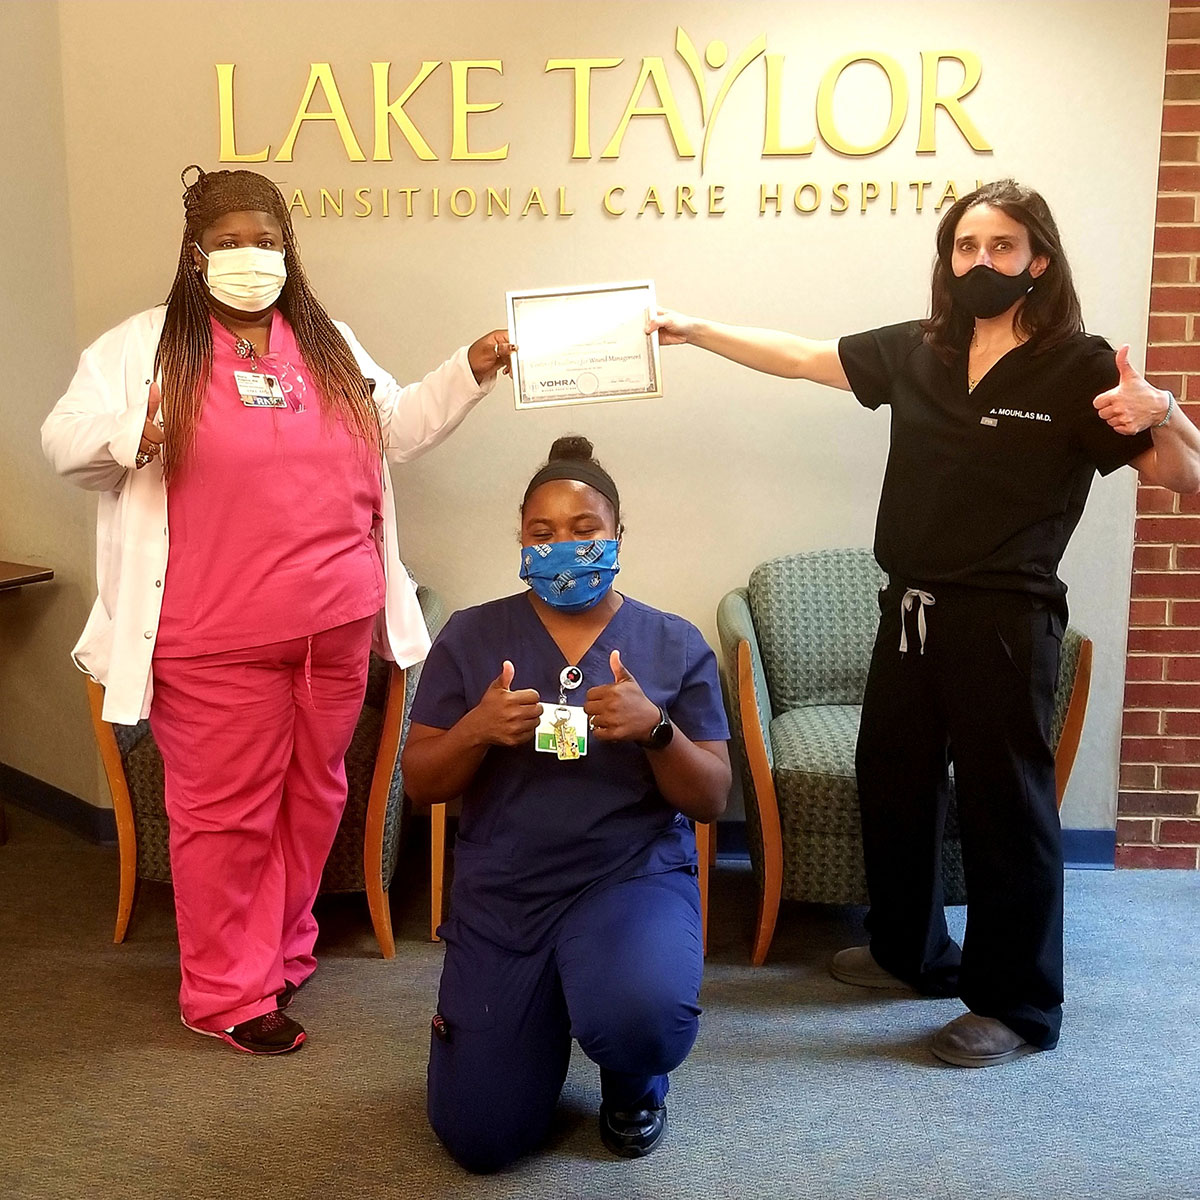 Lake Taylor staff give thumbs up to VOHRA Wound Management Certification